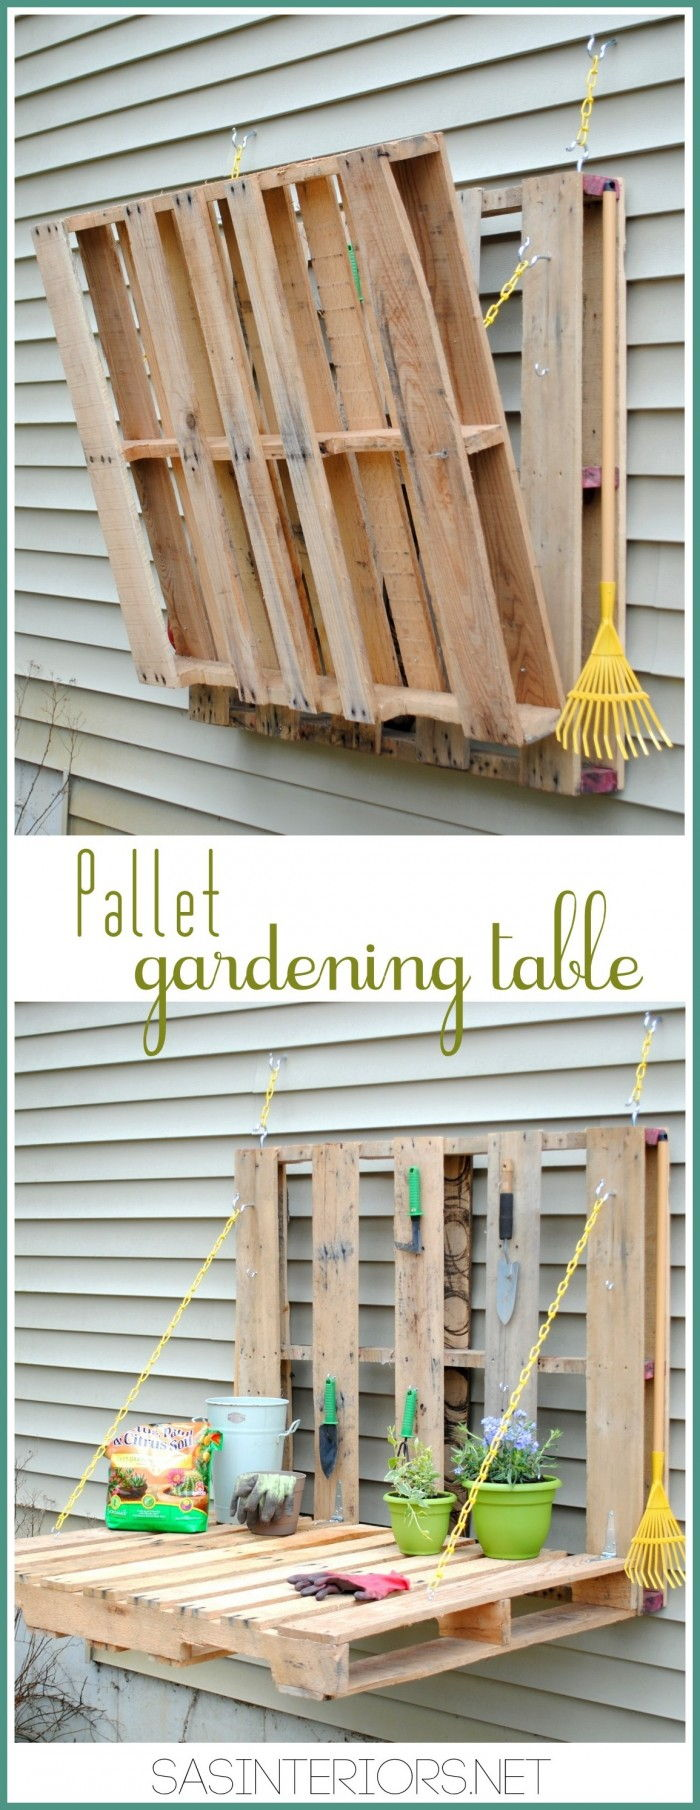 AD-Creative-Pallet-Furniture-DIY-Ideas-And-Projects-18